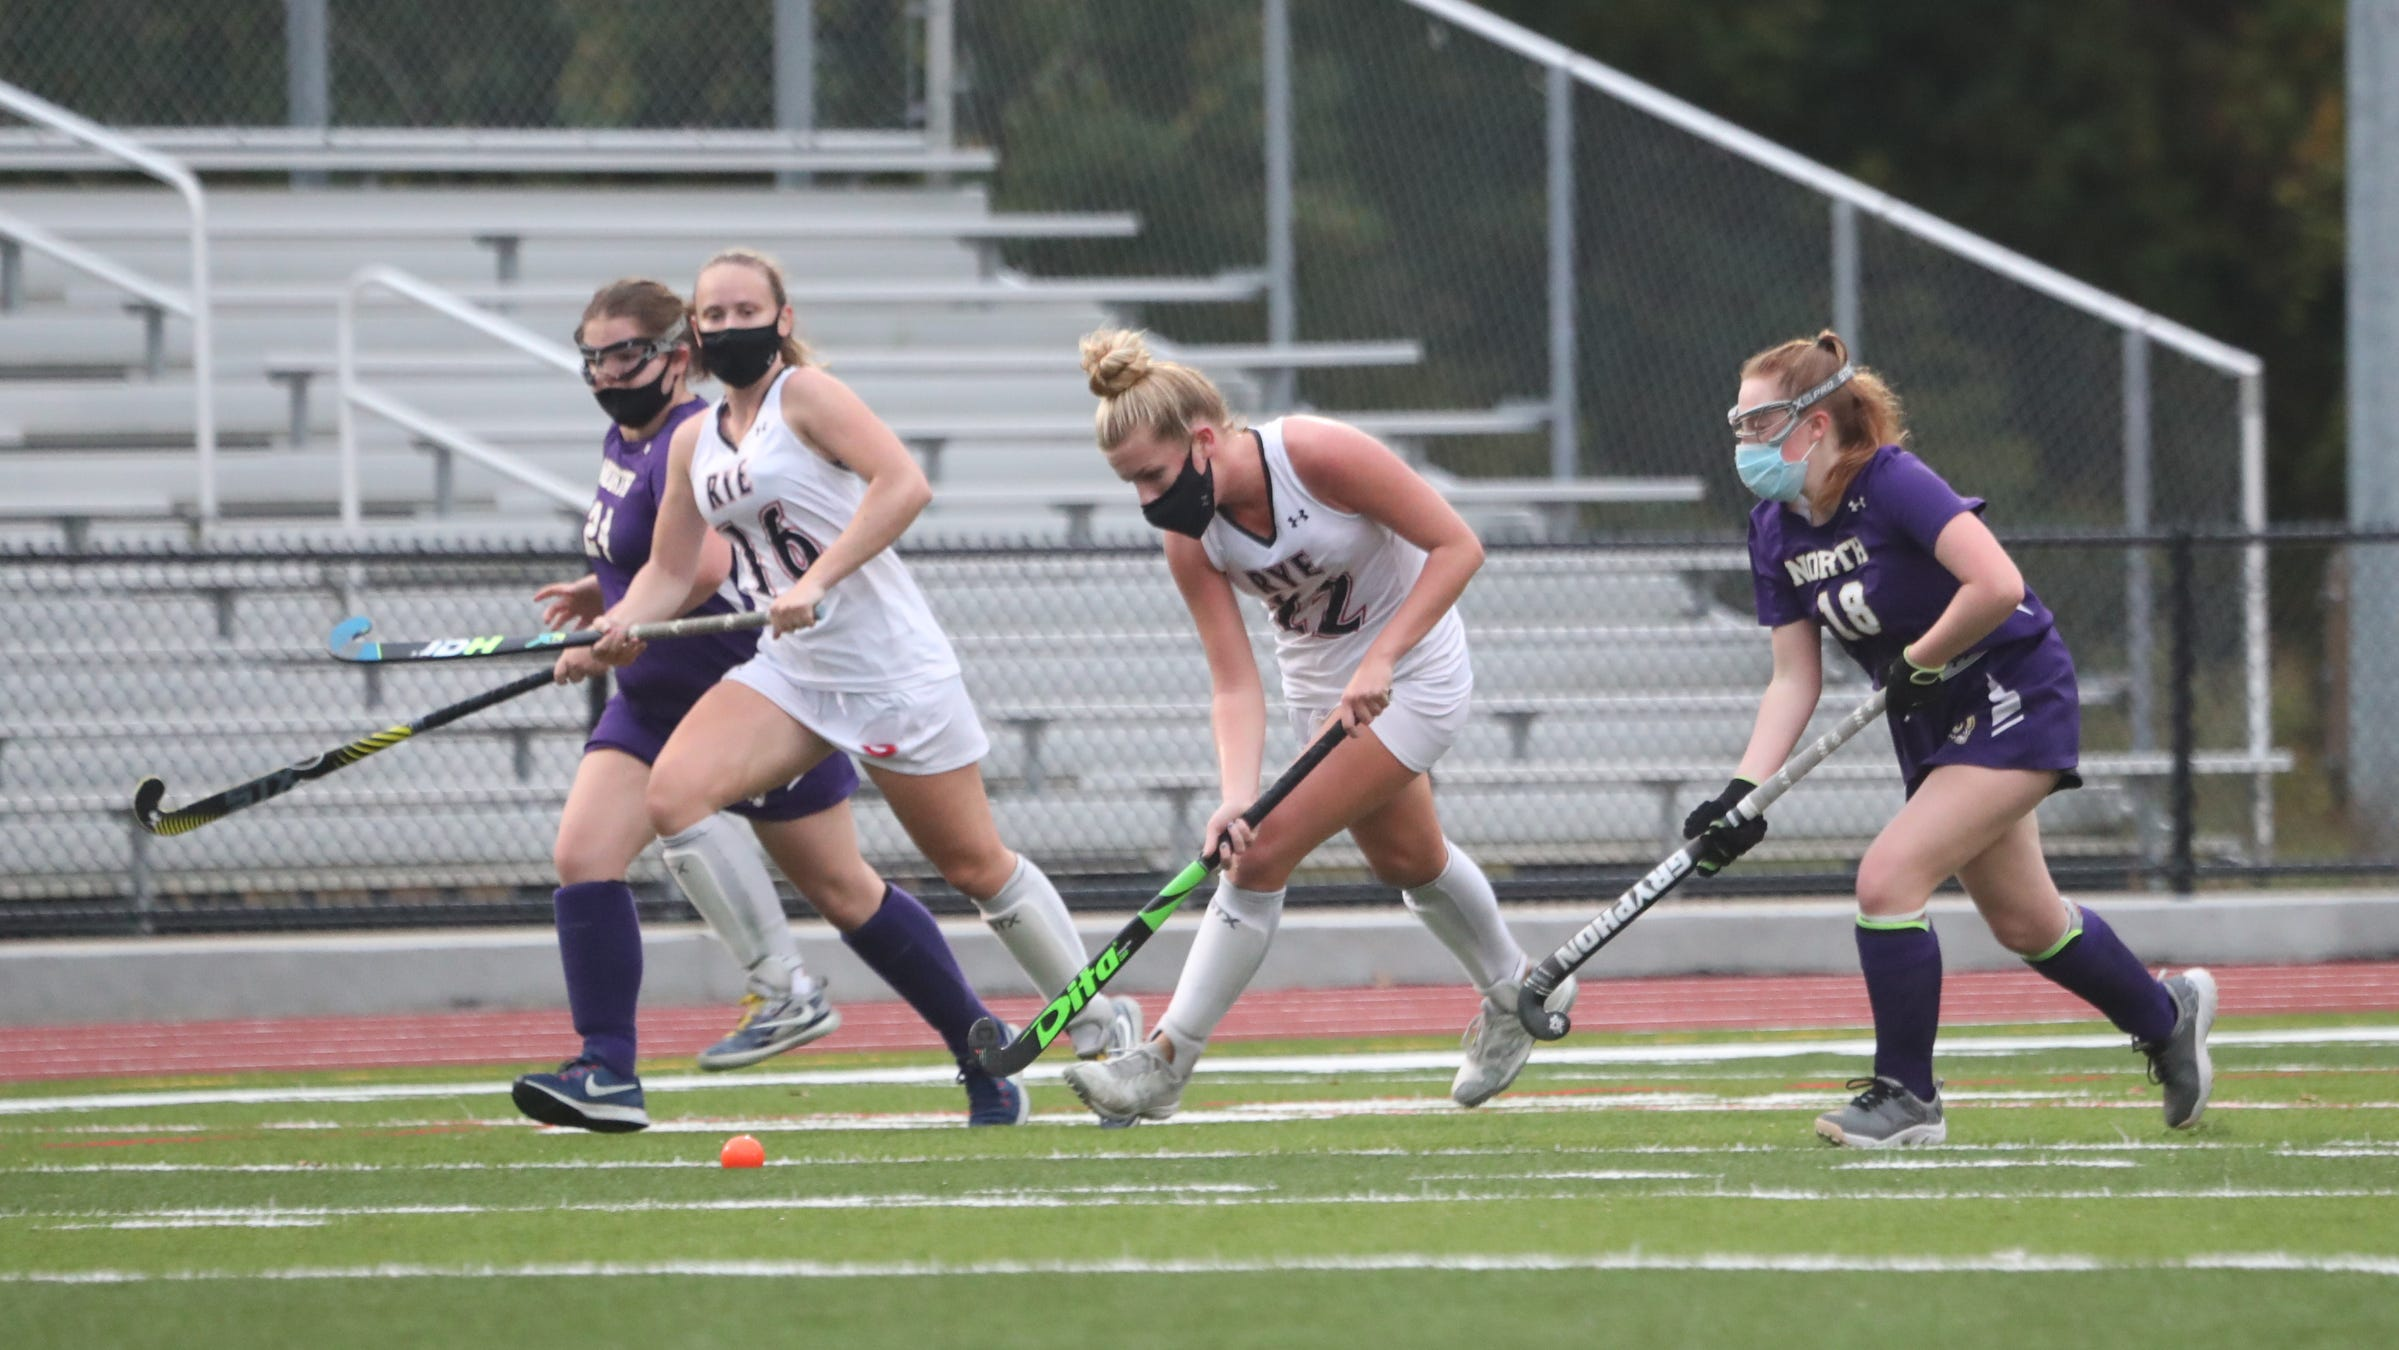 Field hockey: Highlight-reel goal part of Rye onslaught in win over Clarkstown North